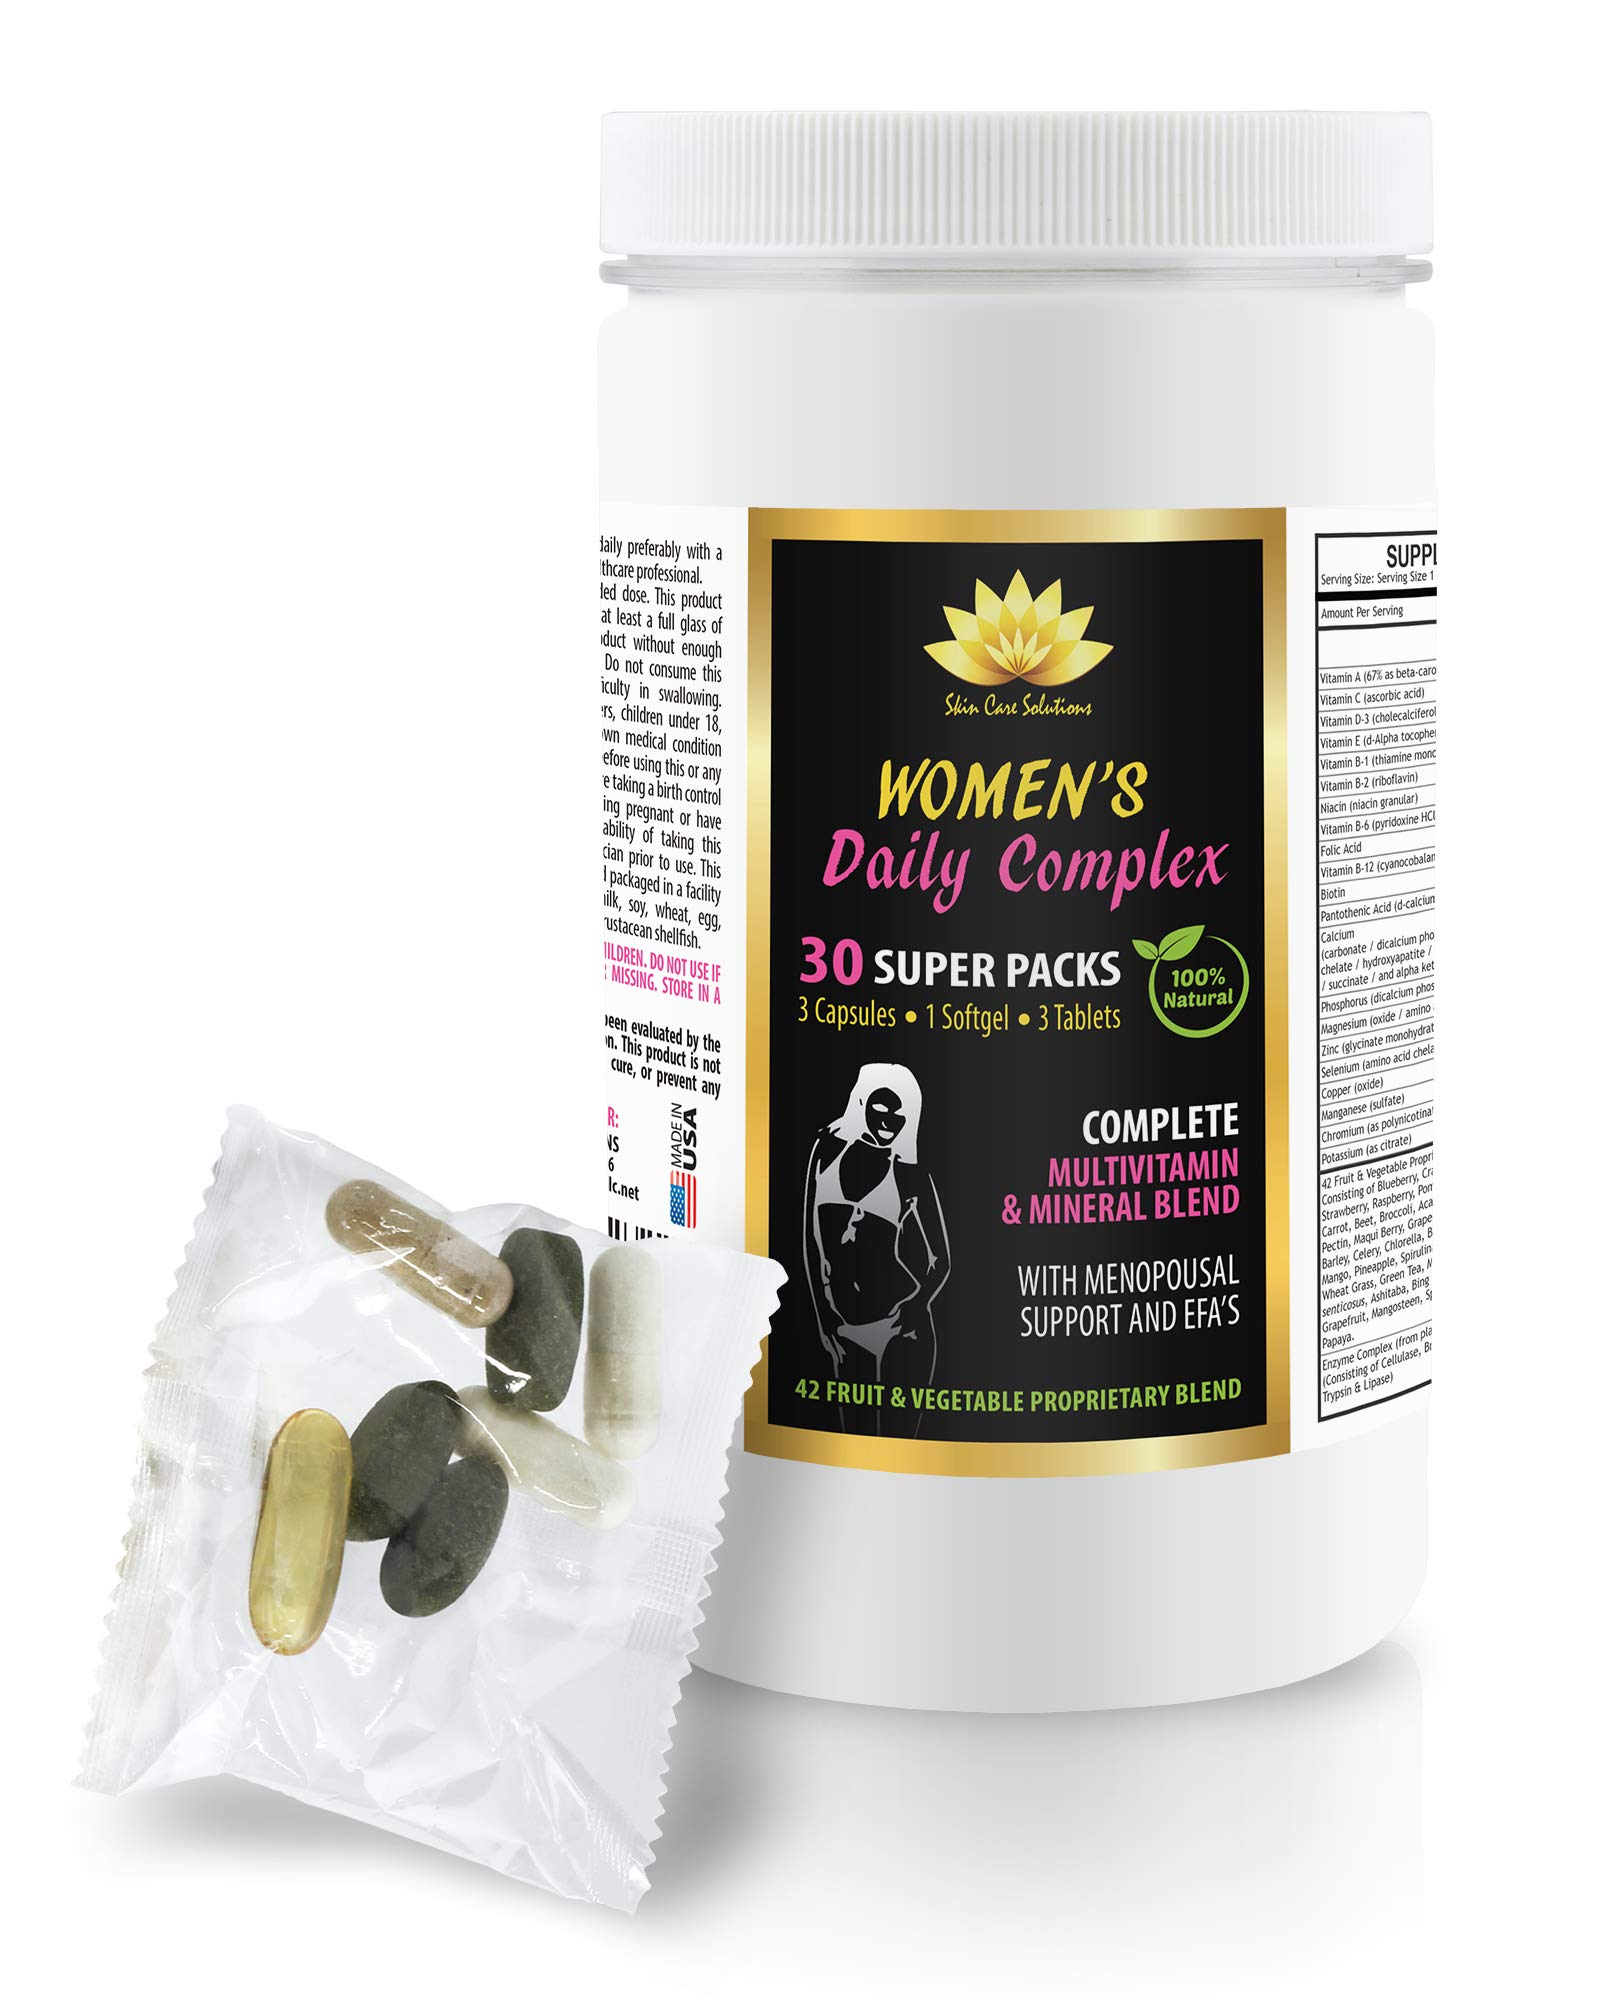 Women Menopause Supplements - Women's Daily Complex - 100% Natural - Black Cohosh and red Clover - 1 Can 30 Packs (210 Pills)